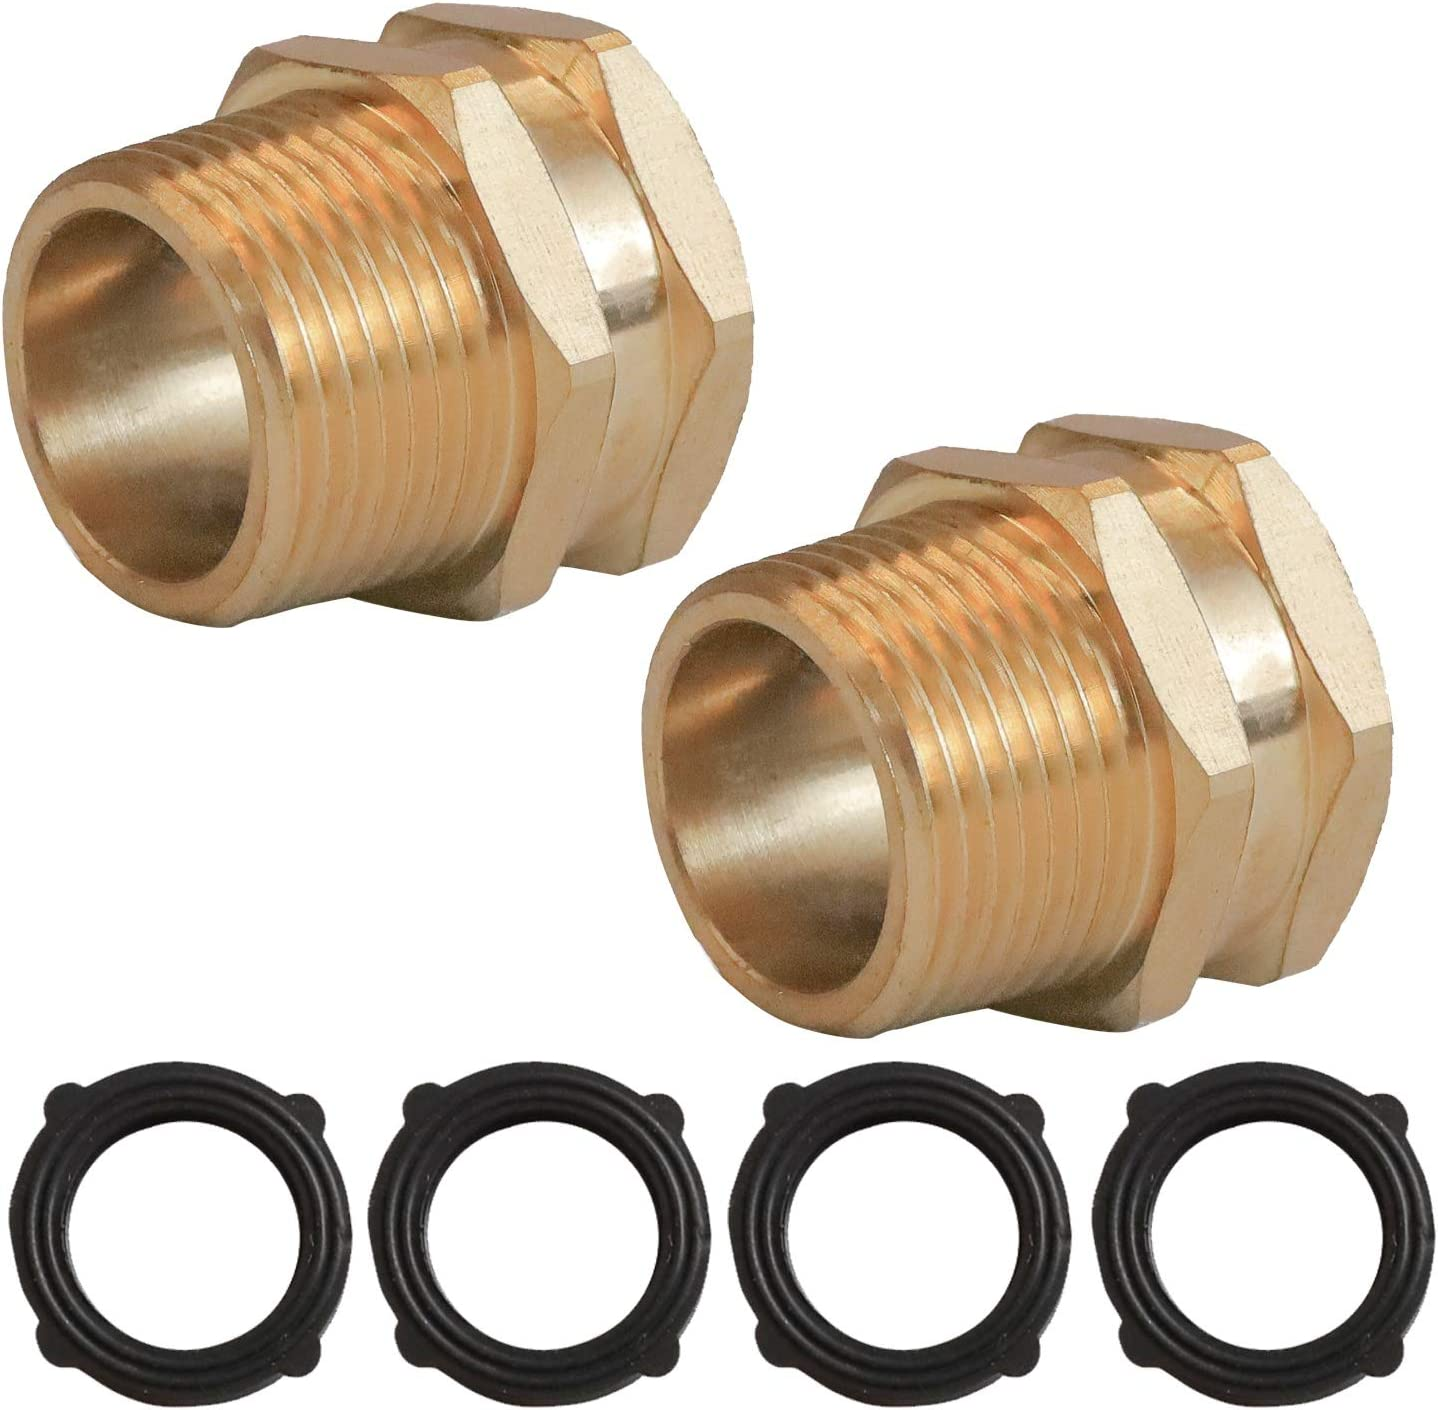 """Xiny Tool 3/4"""" GHT Female X 3/4"""" NPT Male Connector, GHT to NPT Garden Hose Adapter Brass Fitting, 2 Pack"""